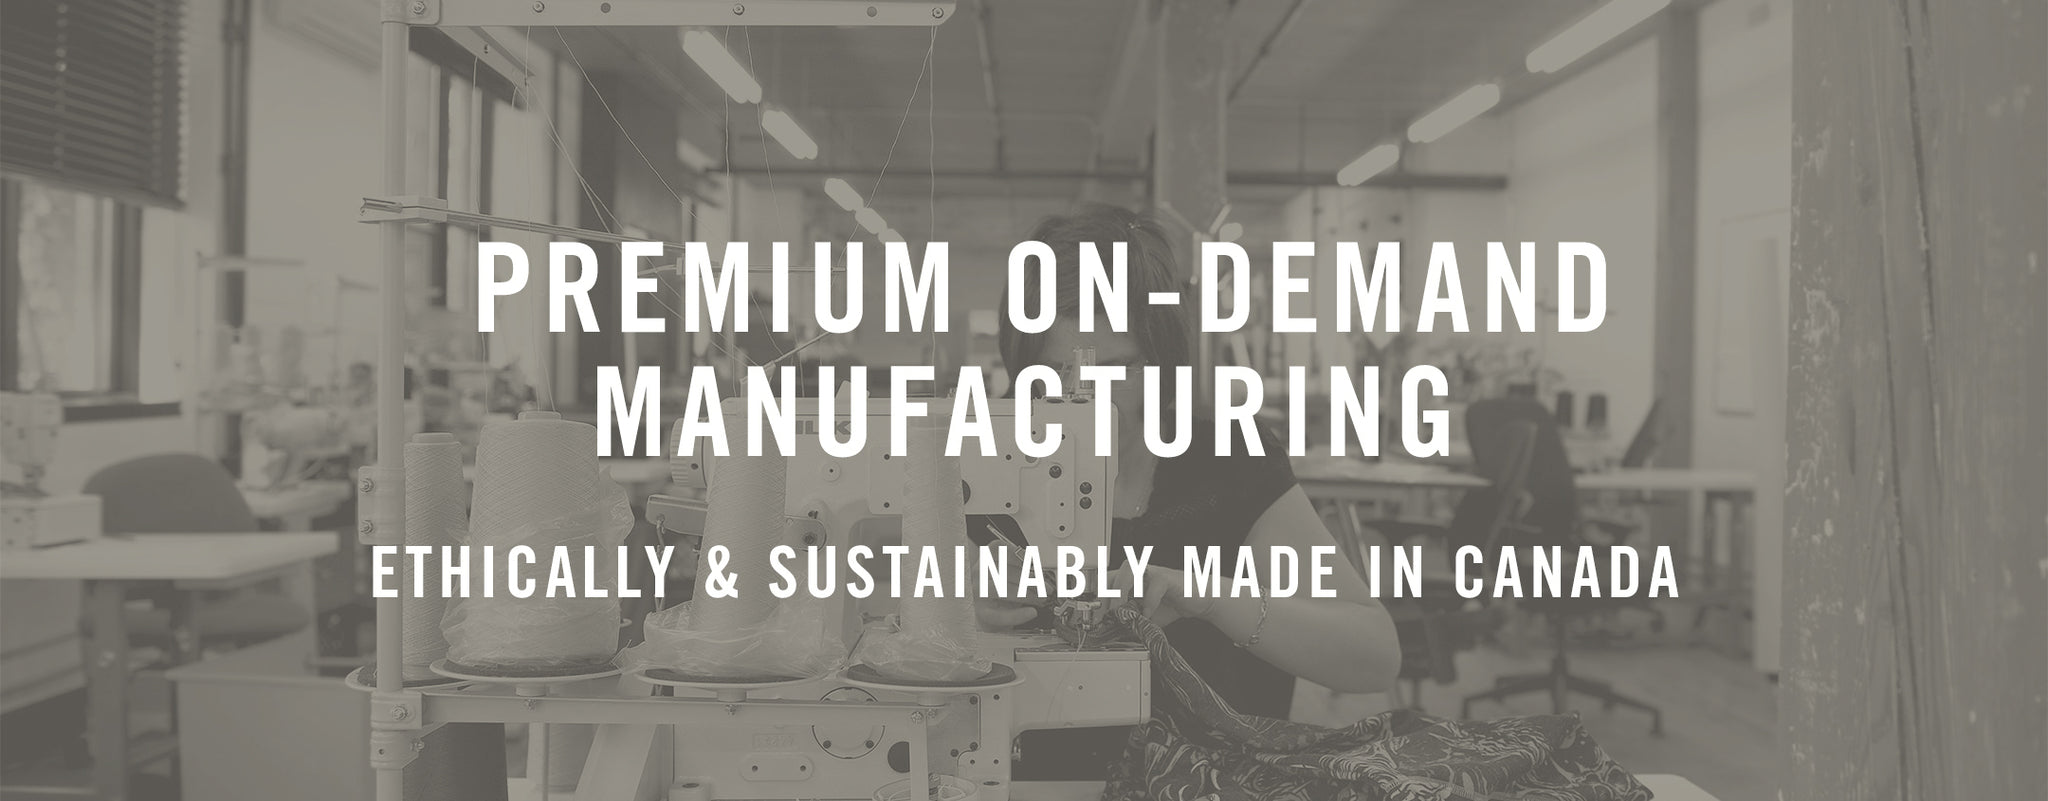 Premium On-Demand Manufacturing - Made in Canada